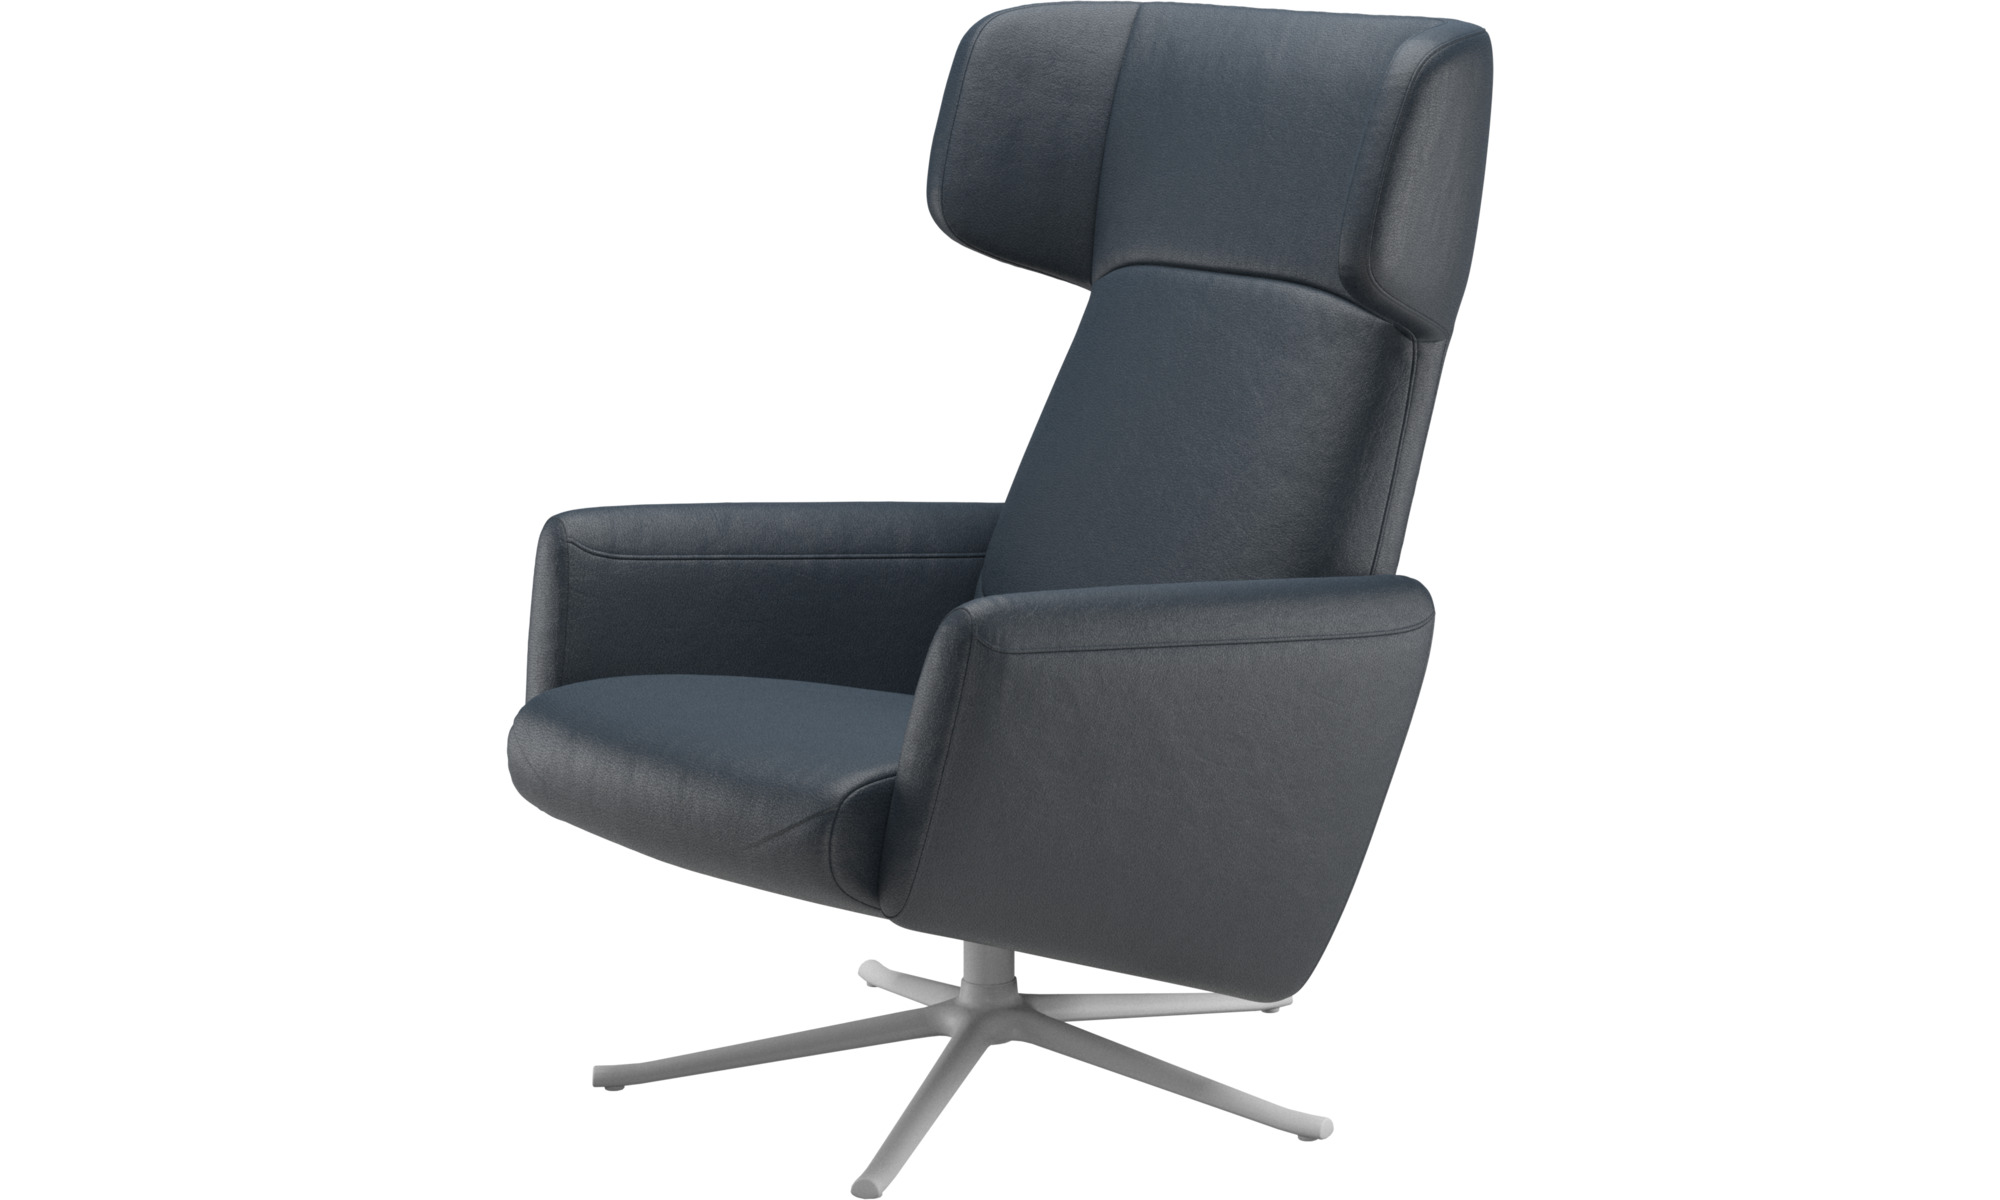 Recliners - Lucca wing recliner with swivel function - Blue - Fabric